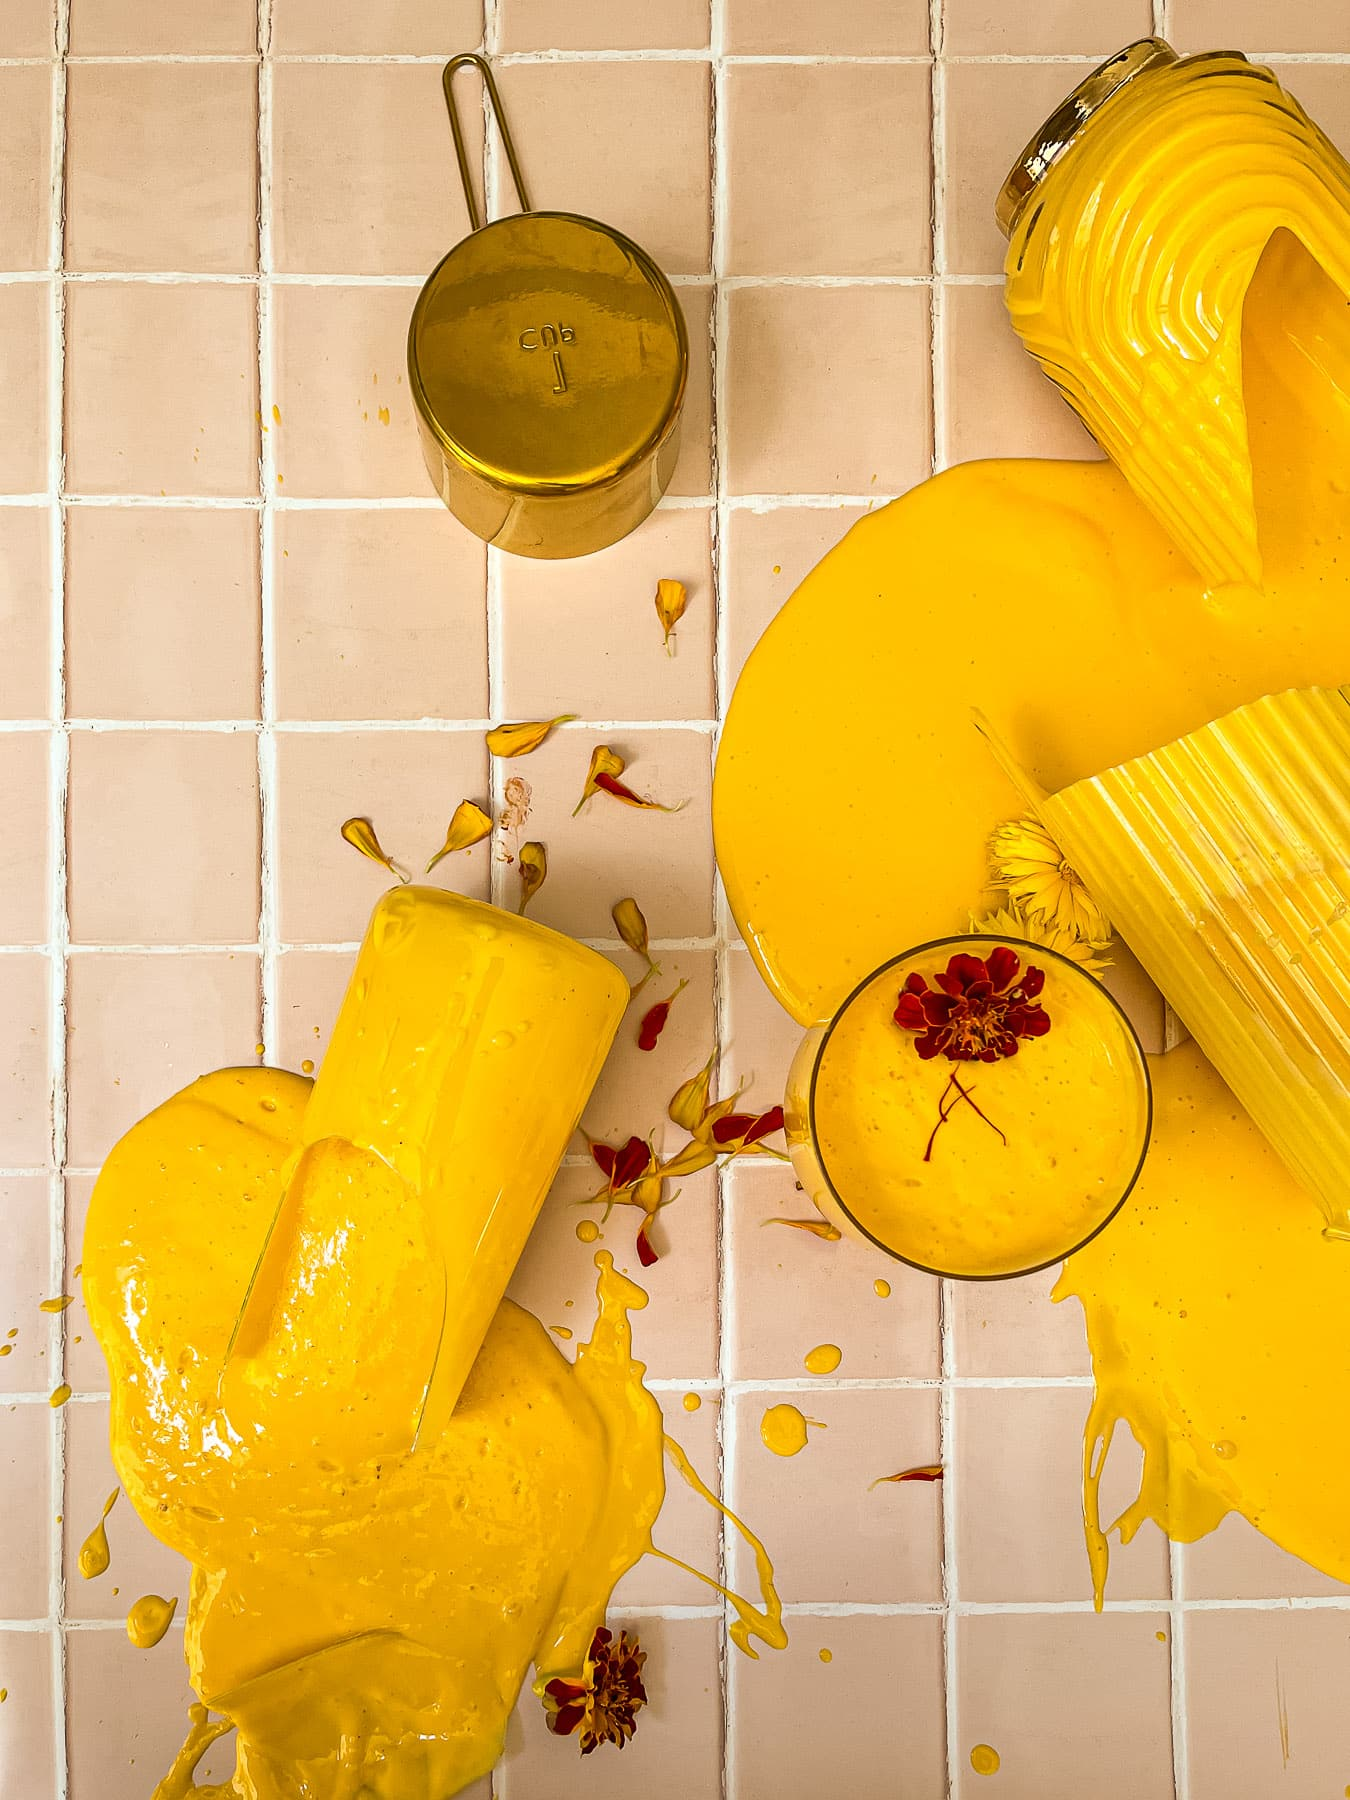 Mango Lassi cups and pitchers cracked and spilled everywhere